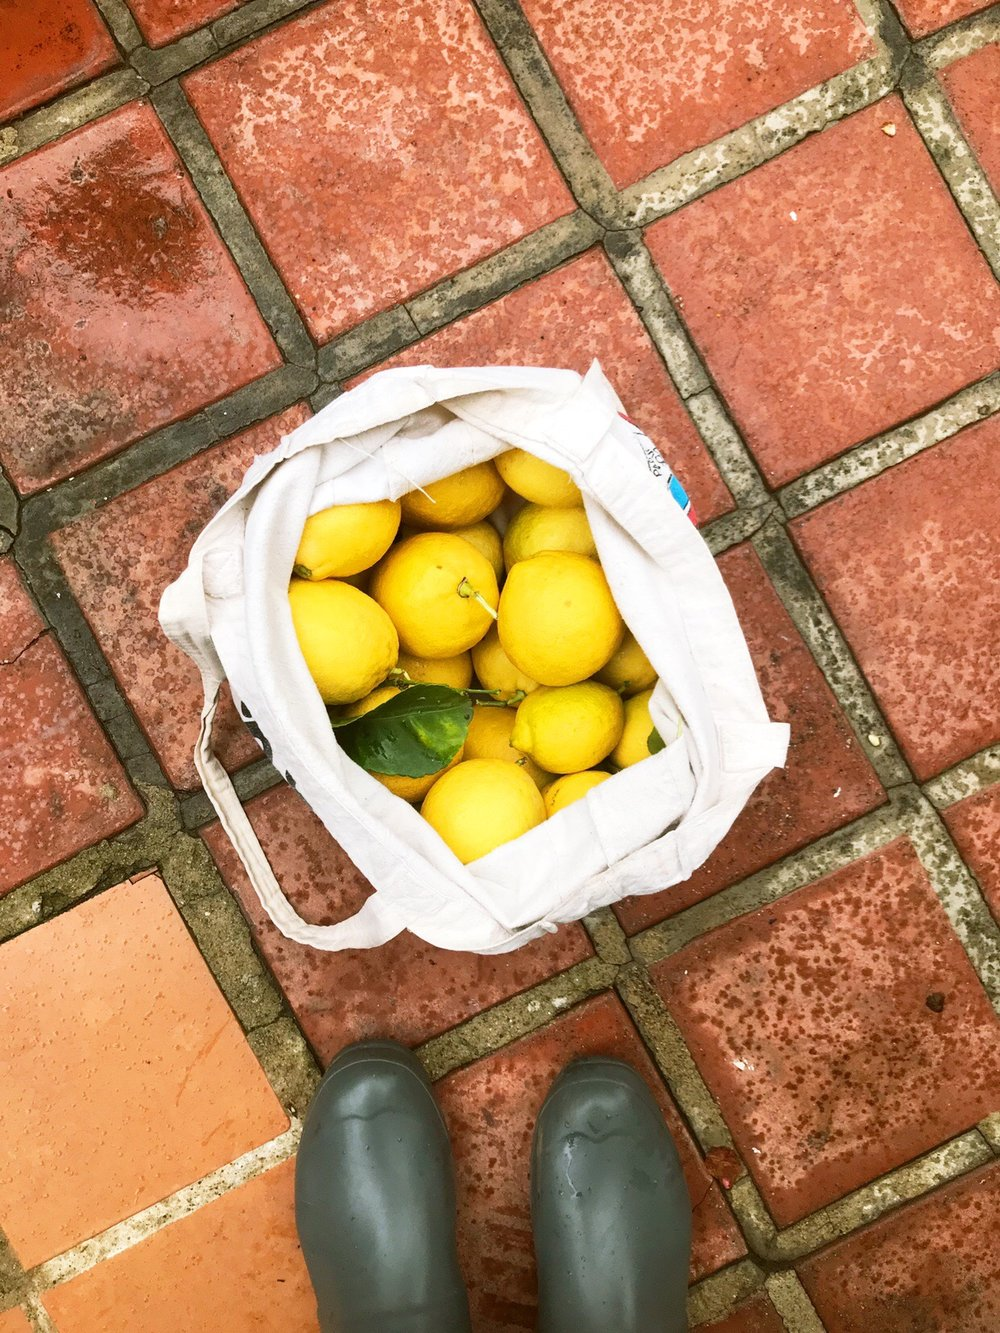 Lemon_Harvest.JPG